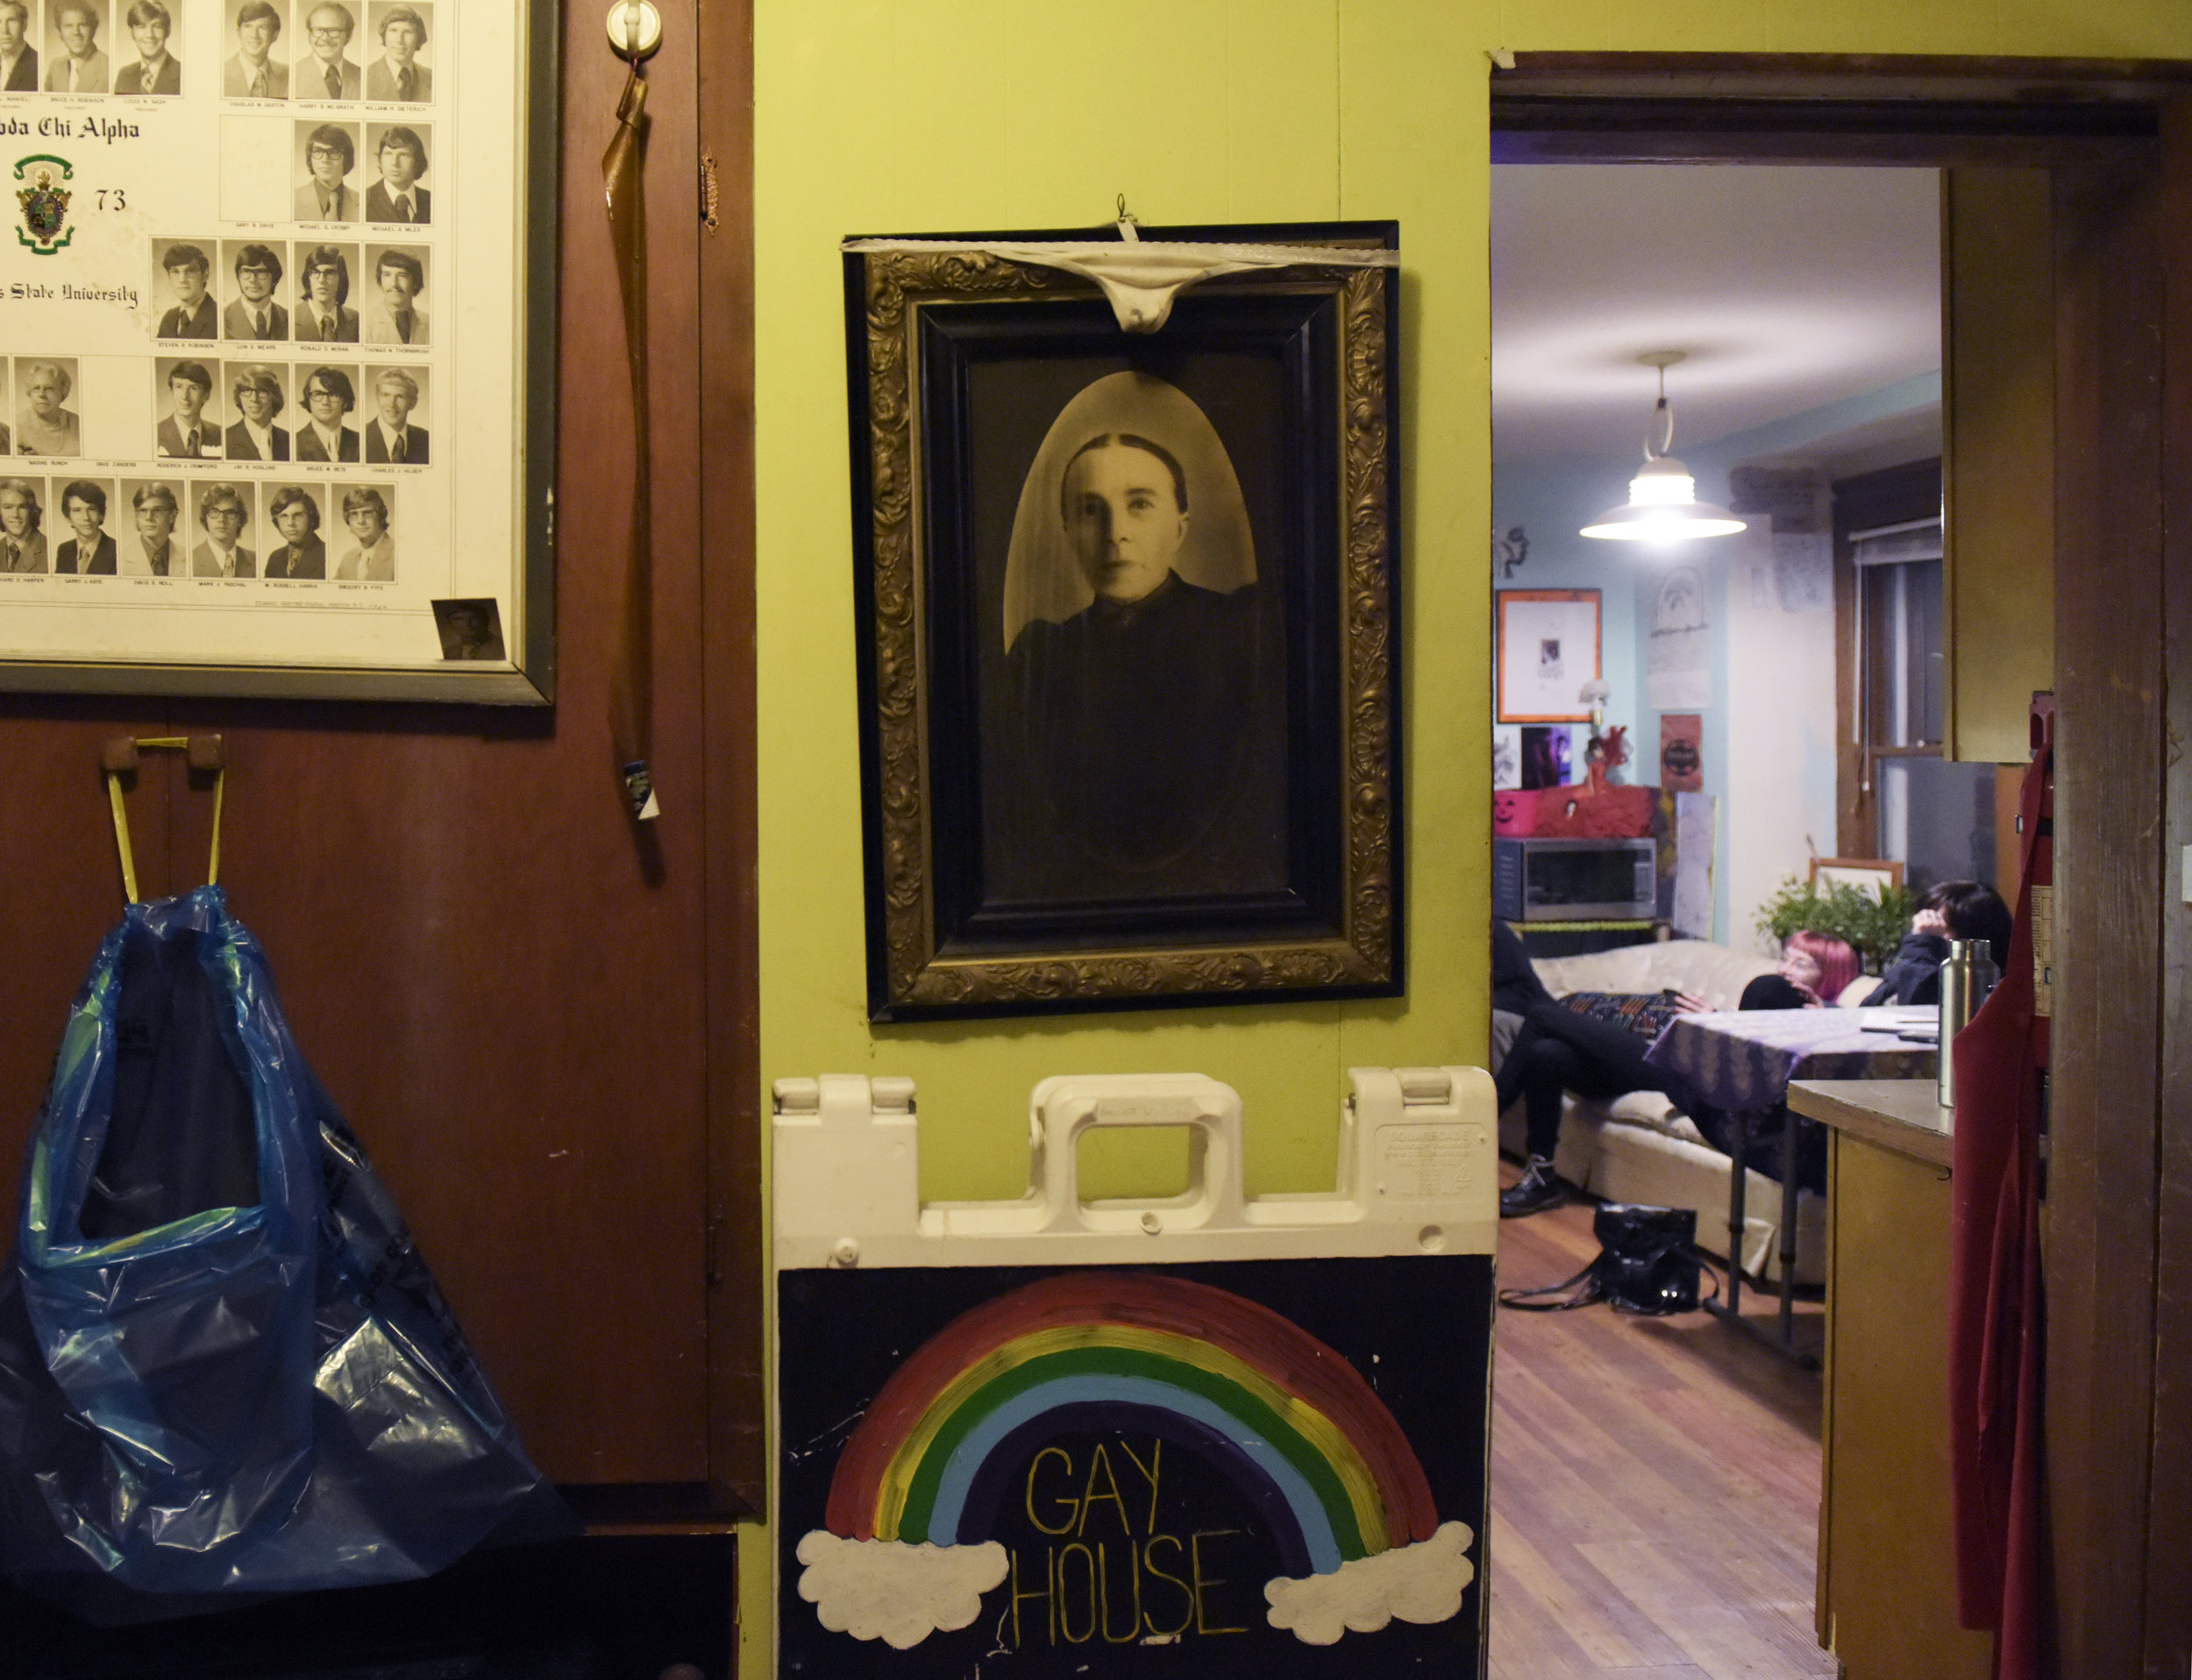 """I hung her up there because, well, it's a haunted house and I wanted people to know when they walked in,"" said Alyssa Kelley who has lived in Gay House since 2012. Alyssa said the house is haunted by Jane Froman who was a popular singer and entertainer in the 1930s, 40s and 50s. Froman died in Columbia and is buried in the cemetery behind Gay House. Alyssa said they could hear her singing at night. ""She hasn't been here since the paranormal investigators came,"" she said. ""I think we pissed her off by letting them come here."""